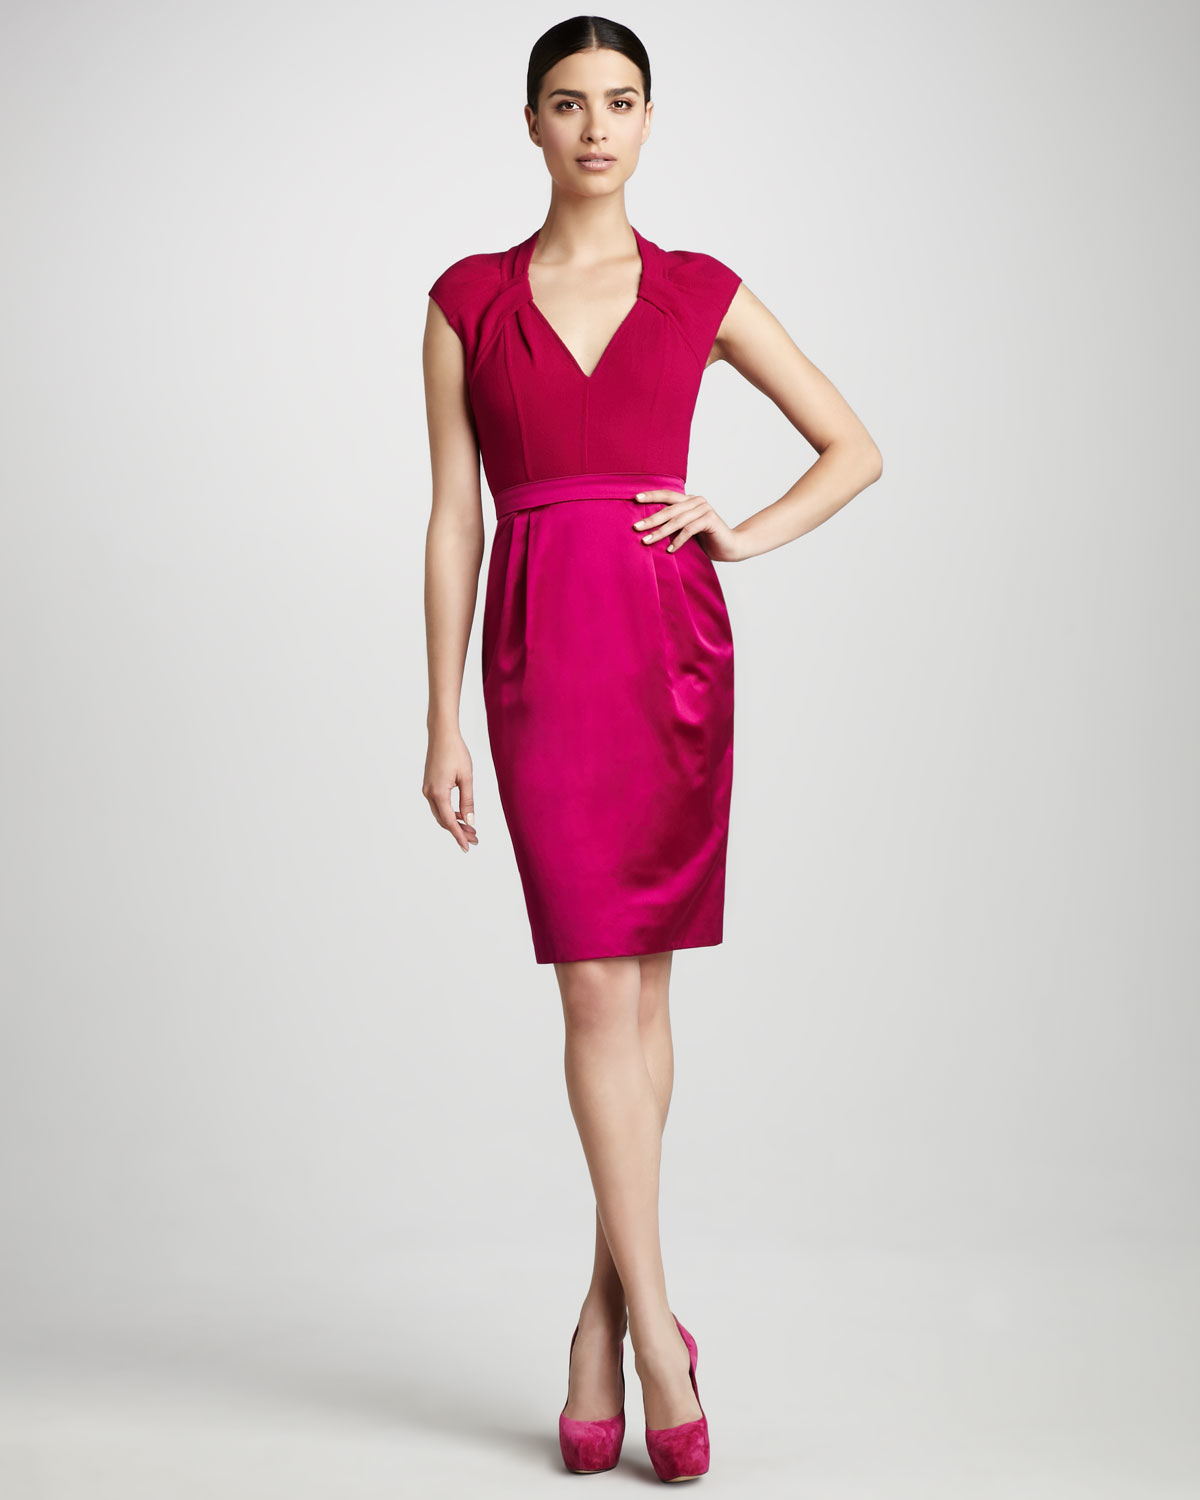 Carmen marc valvo Cap-sleeve Cocktail Dress in Pink | Lyst